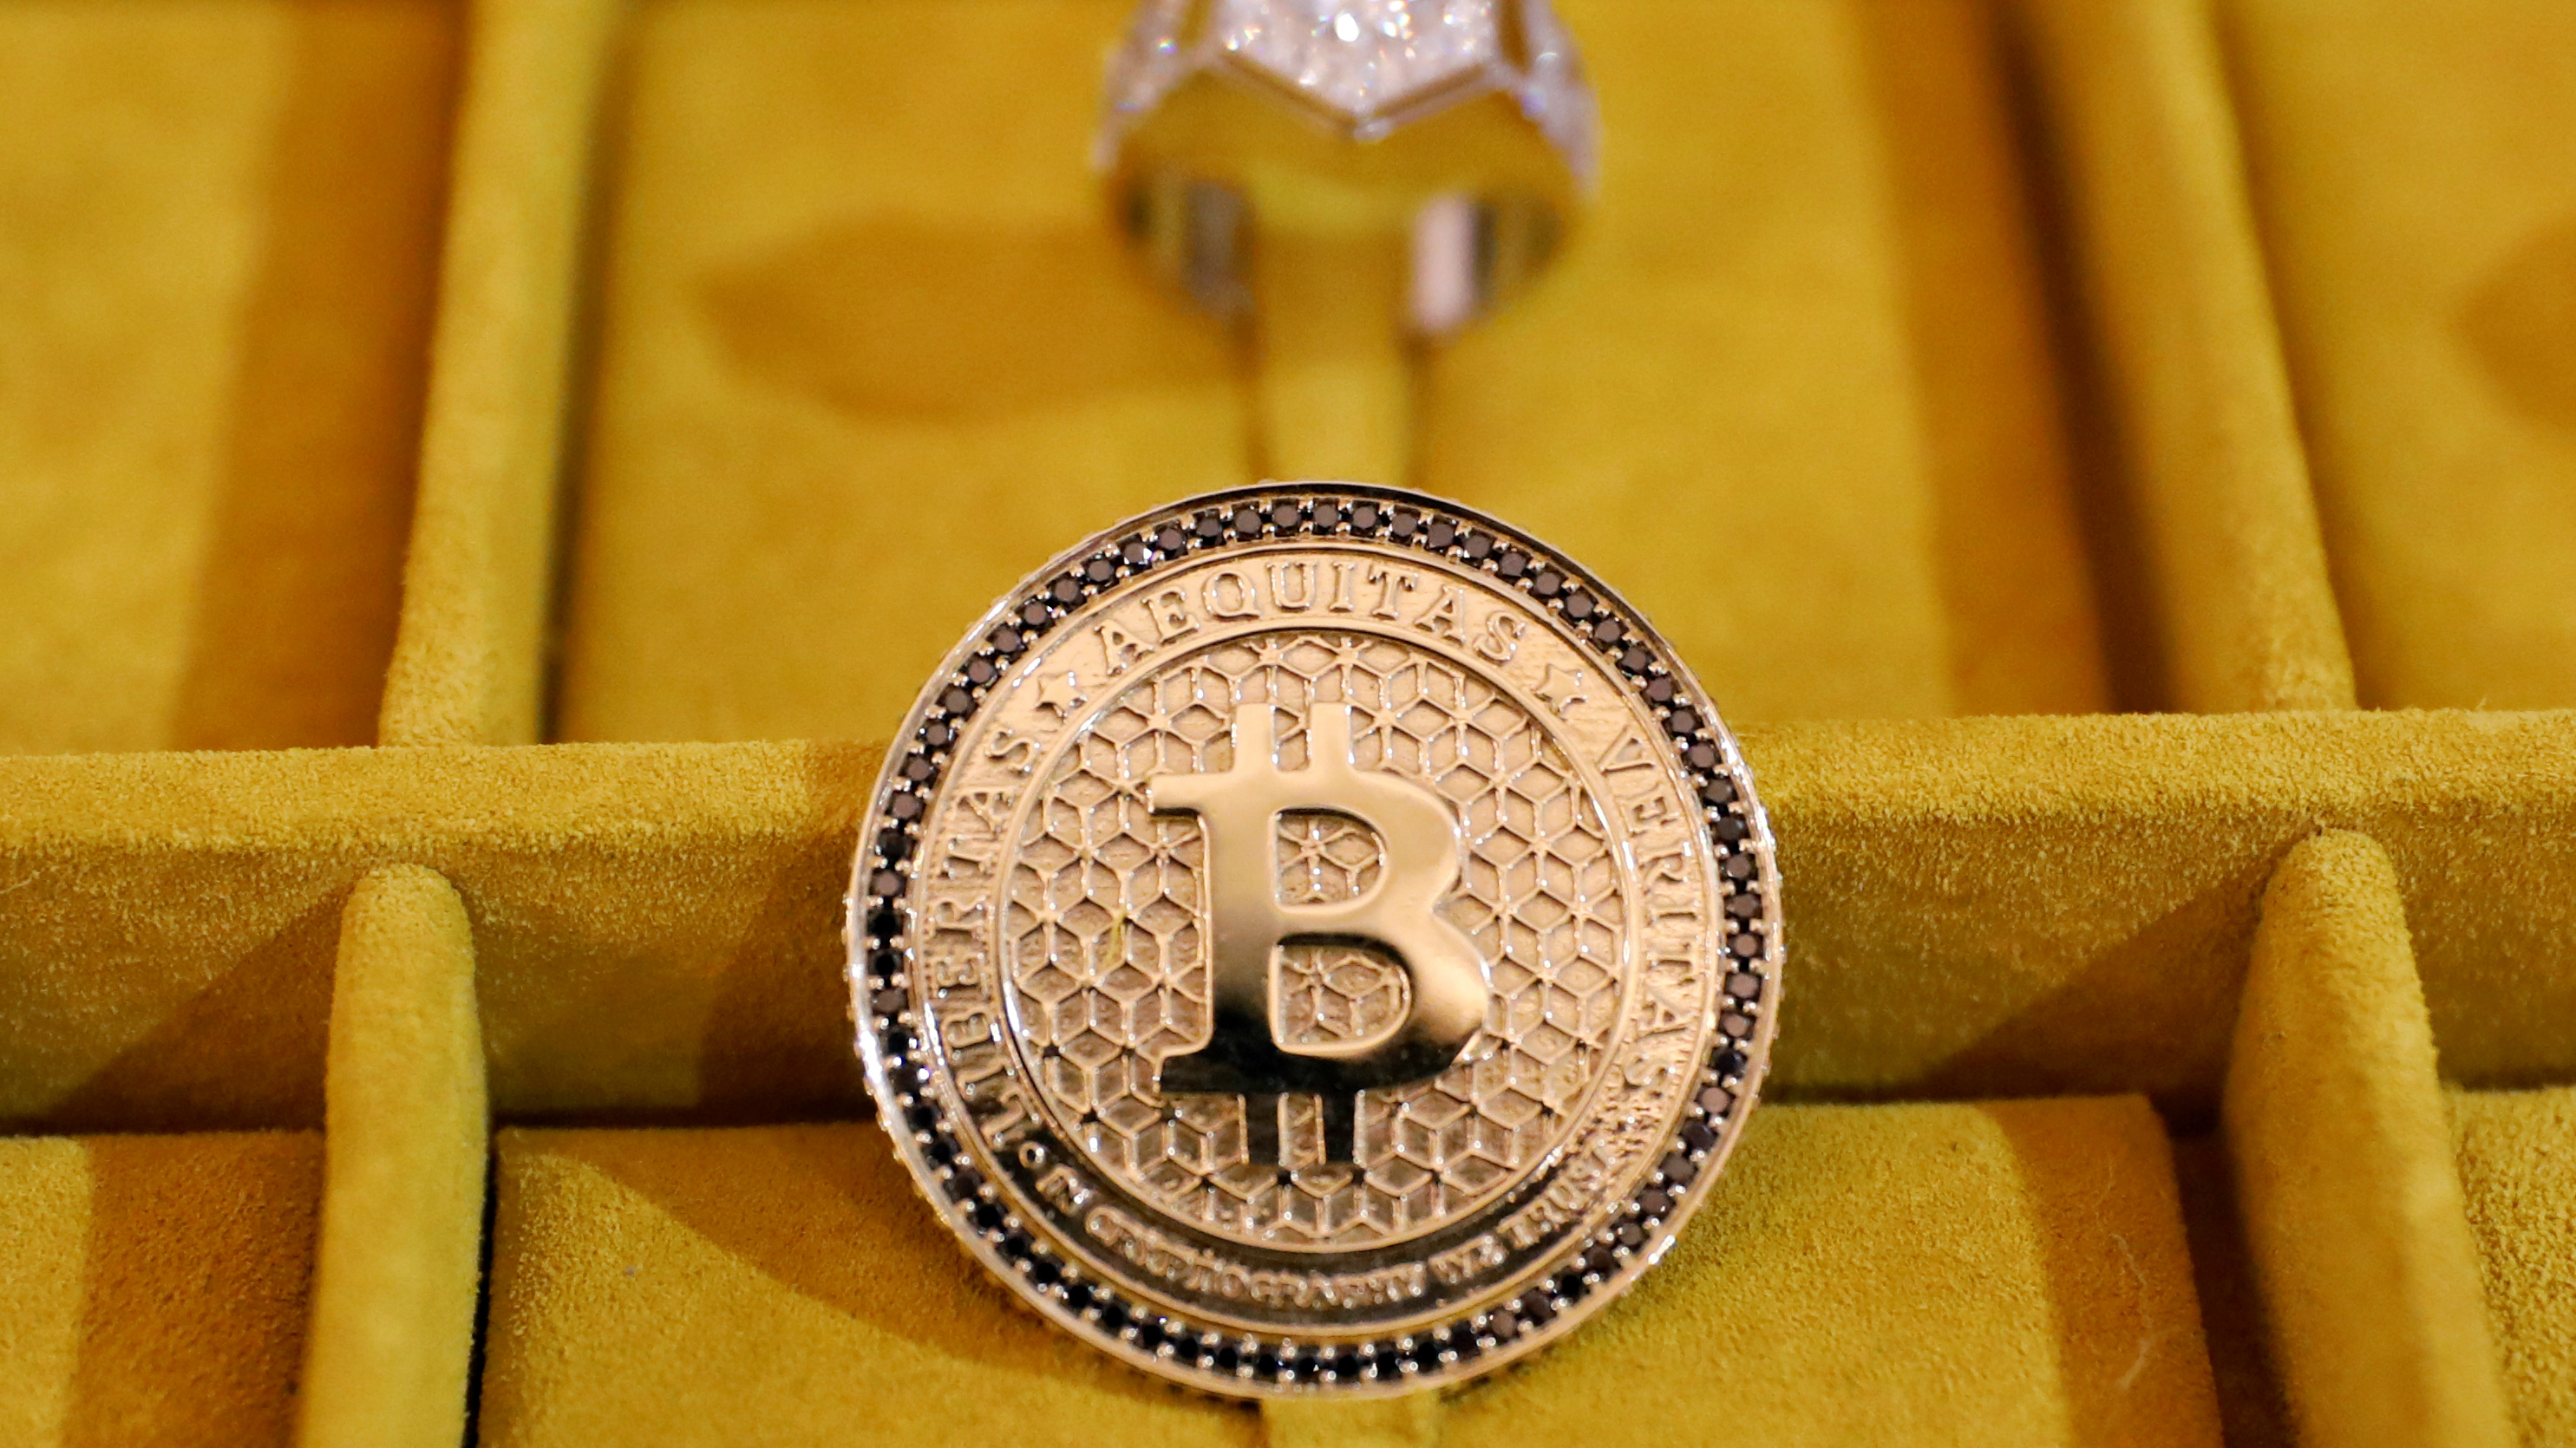 Jewelry with the Bitcoin logo.